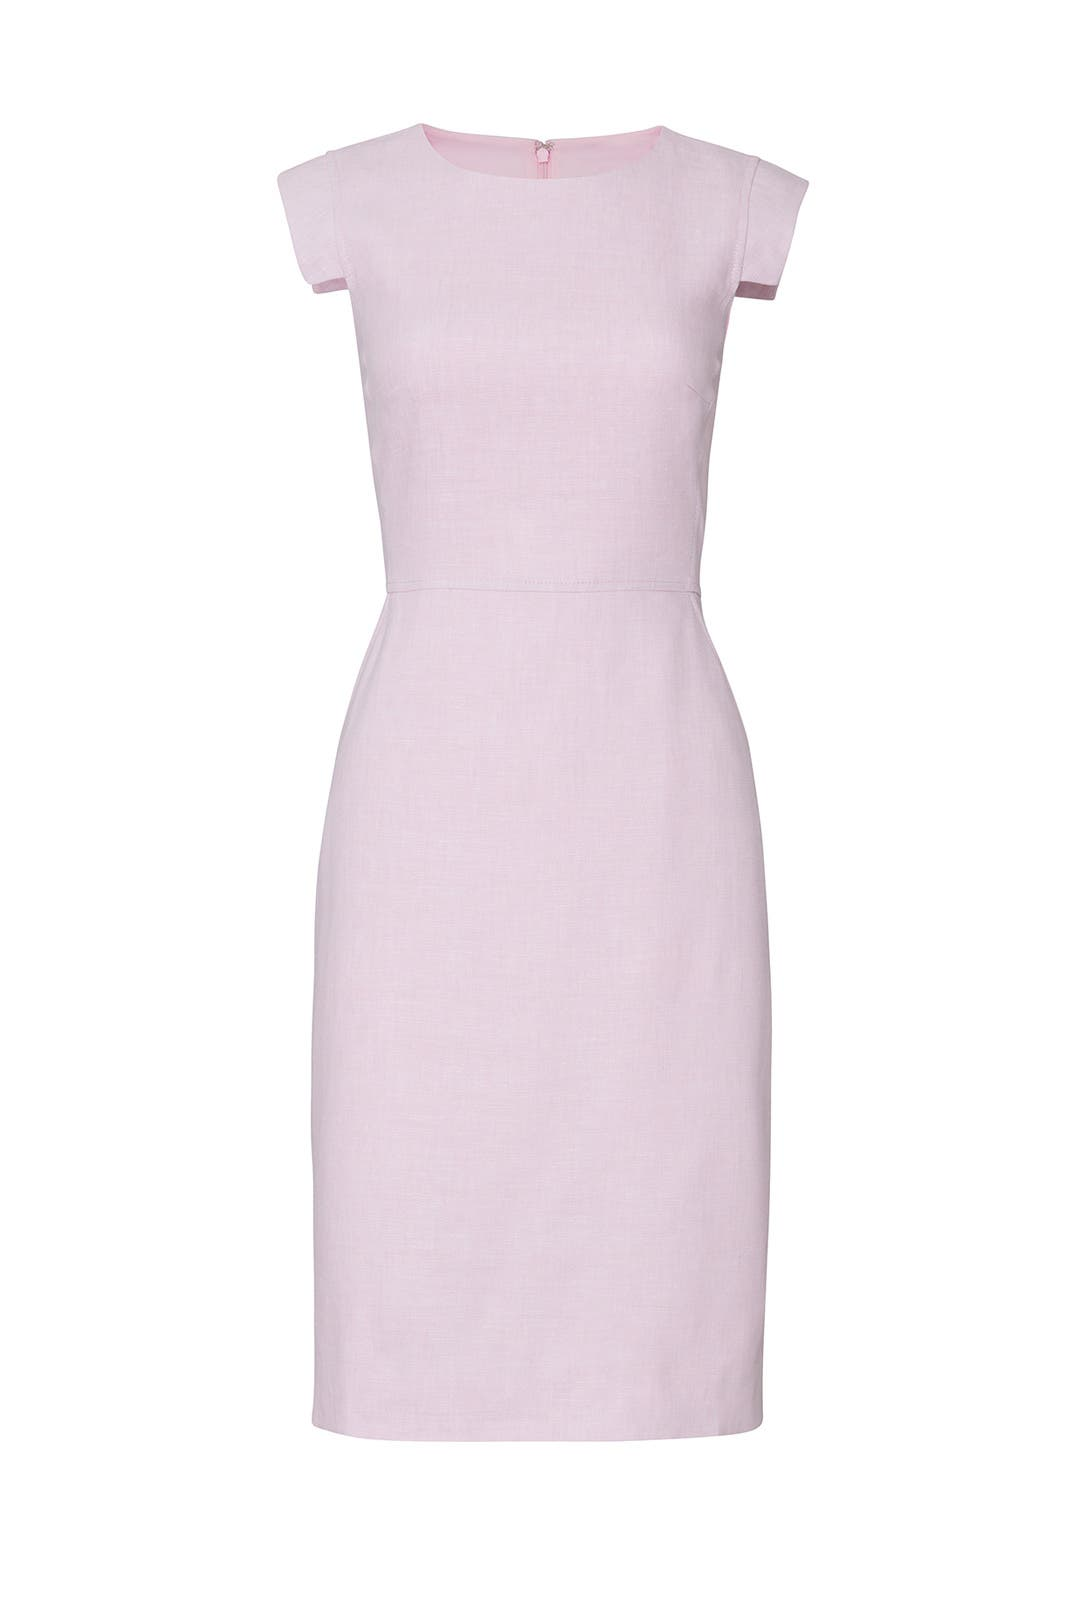 Pale Orchid Resume Dress By J Crew For 30 Rent The Runway